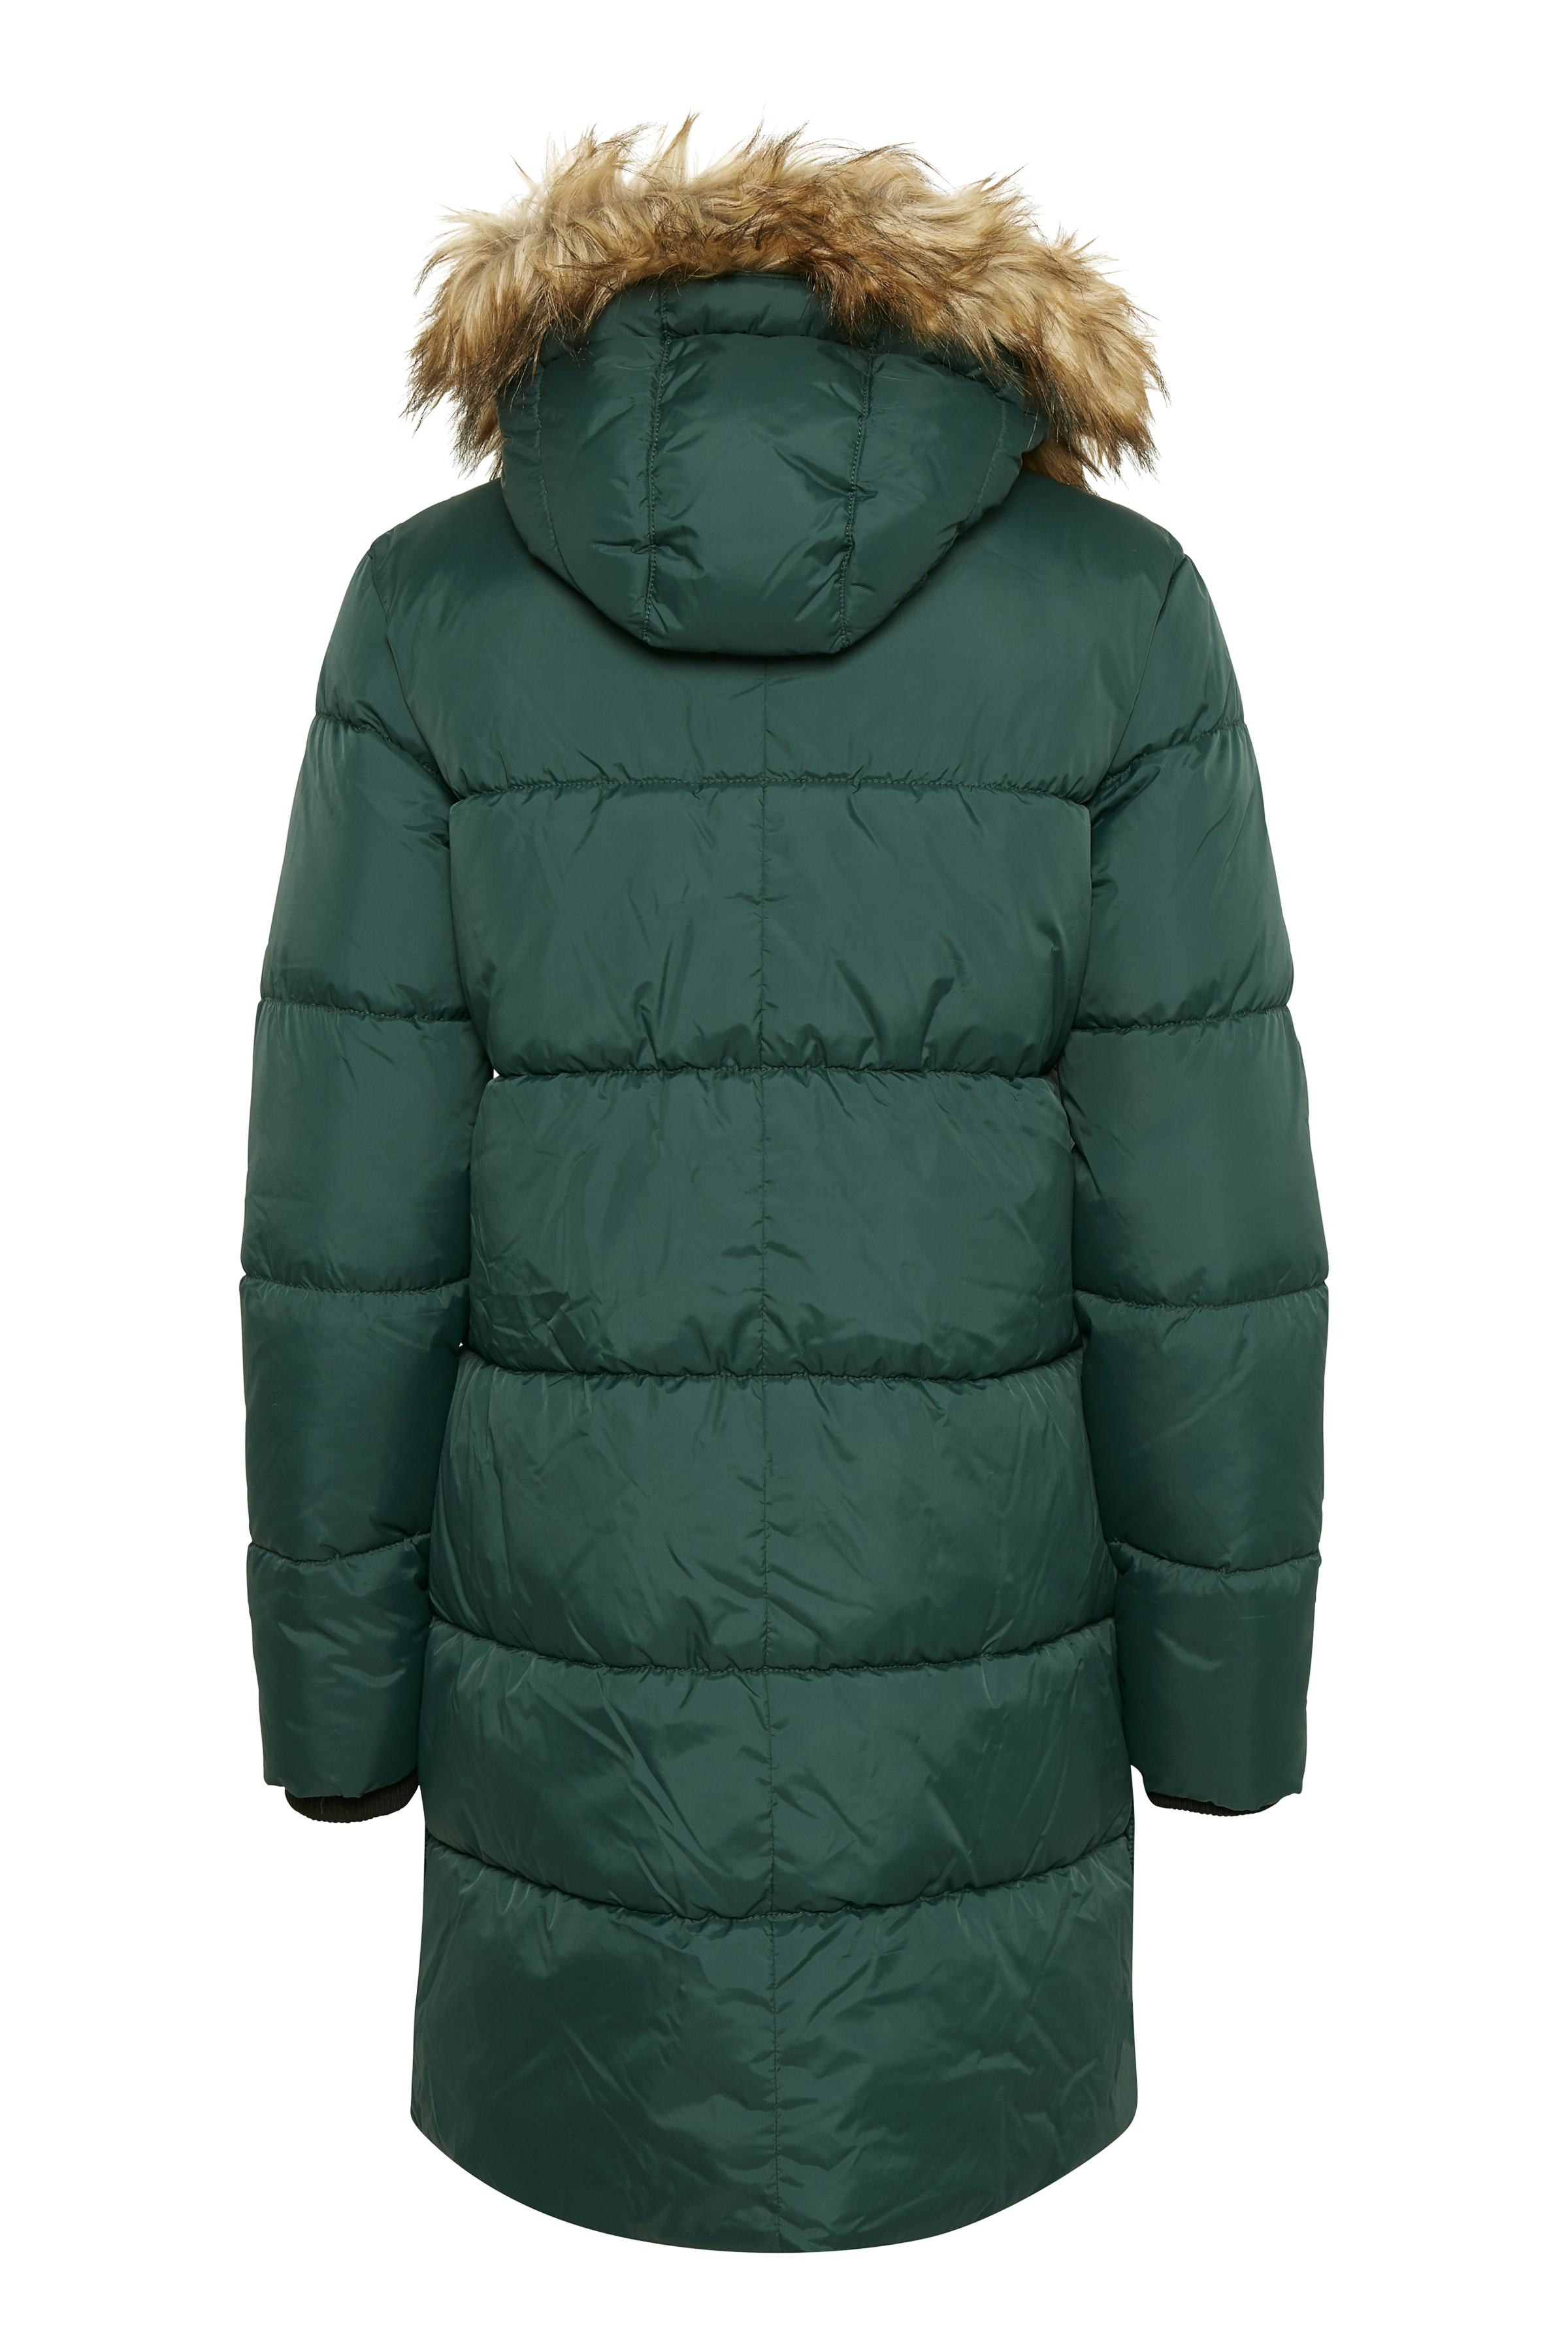 Majestic Green Jacket from b.young – Buy Majestic Green Jacket from size 36-46 here